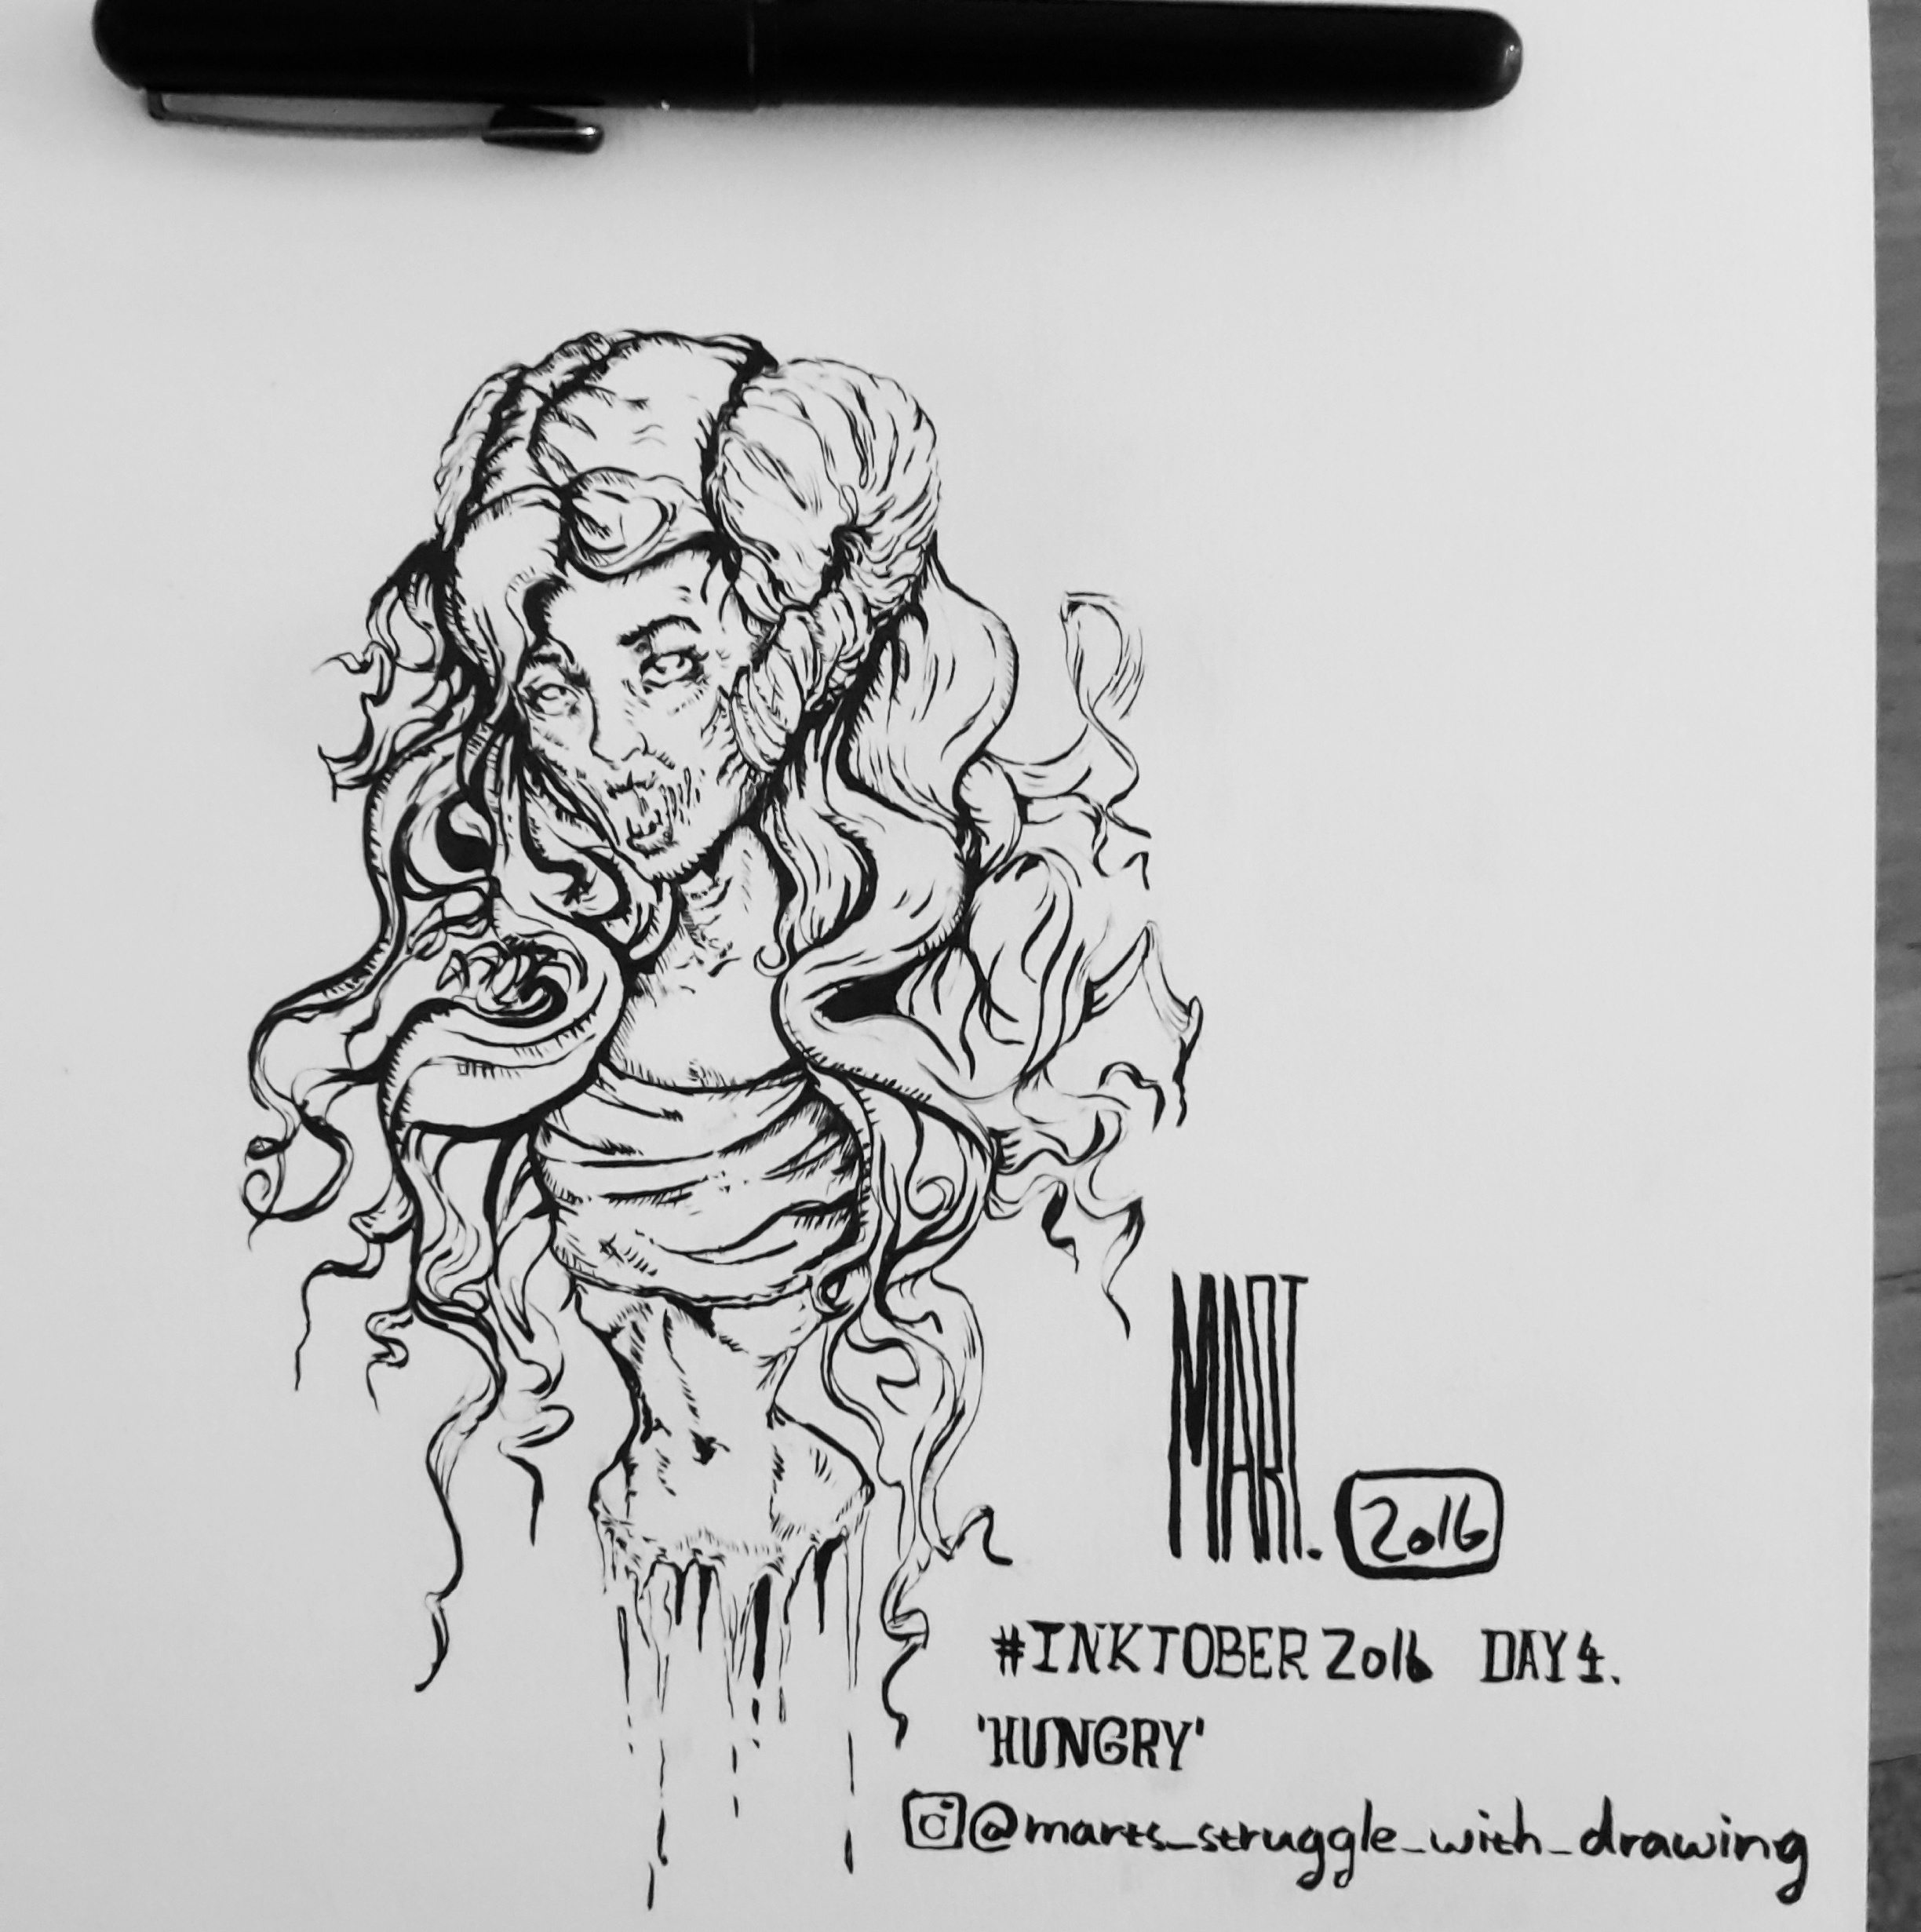 Inktober 2016 day 4 'HUNGRY'